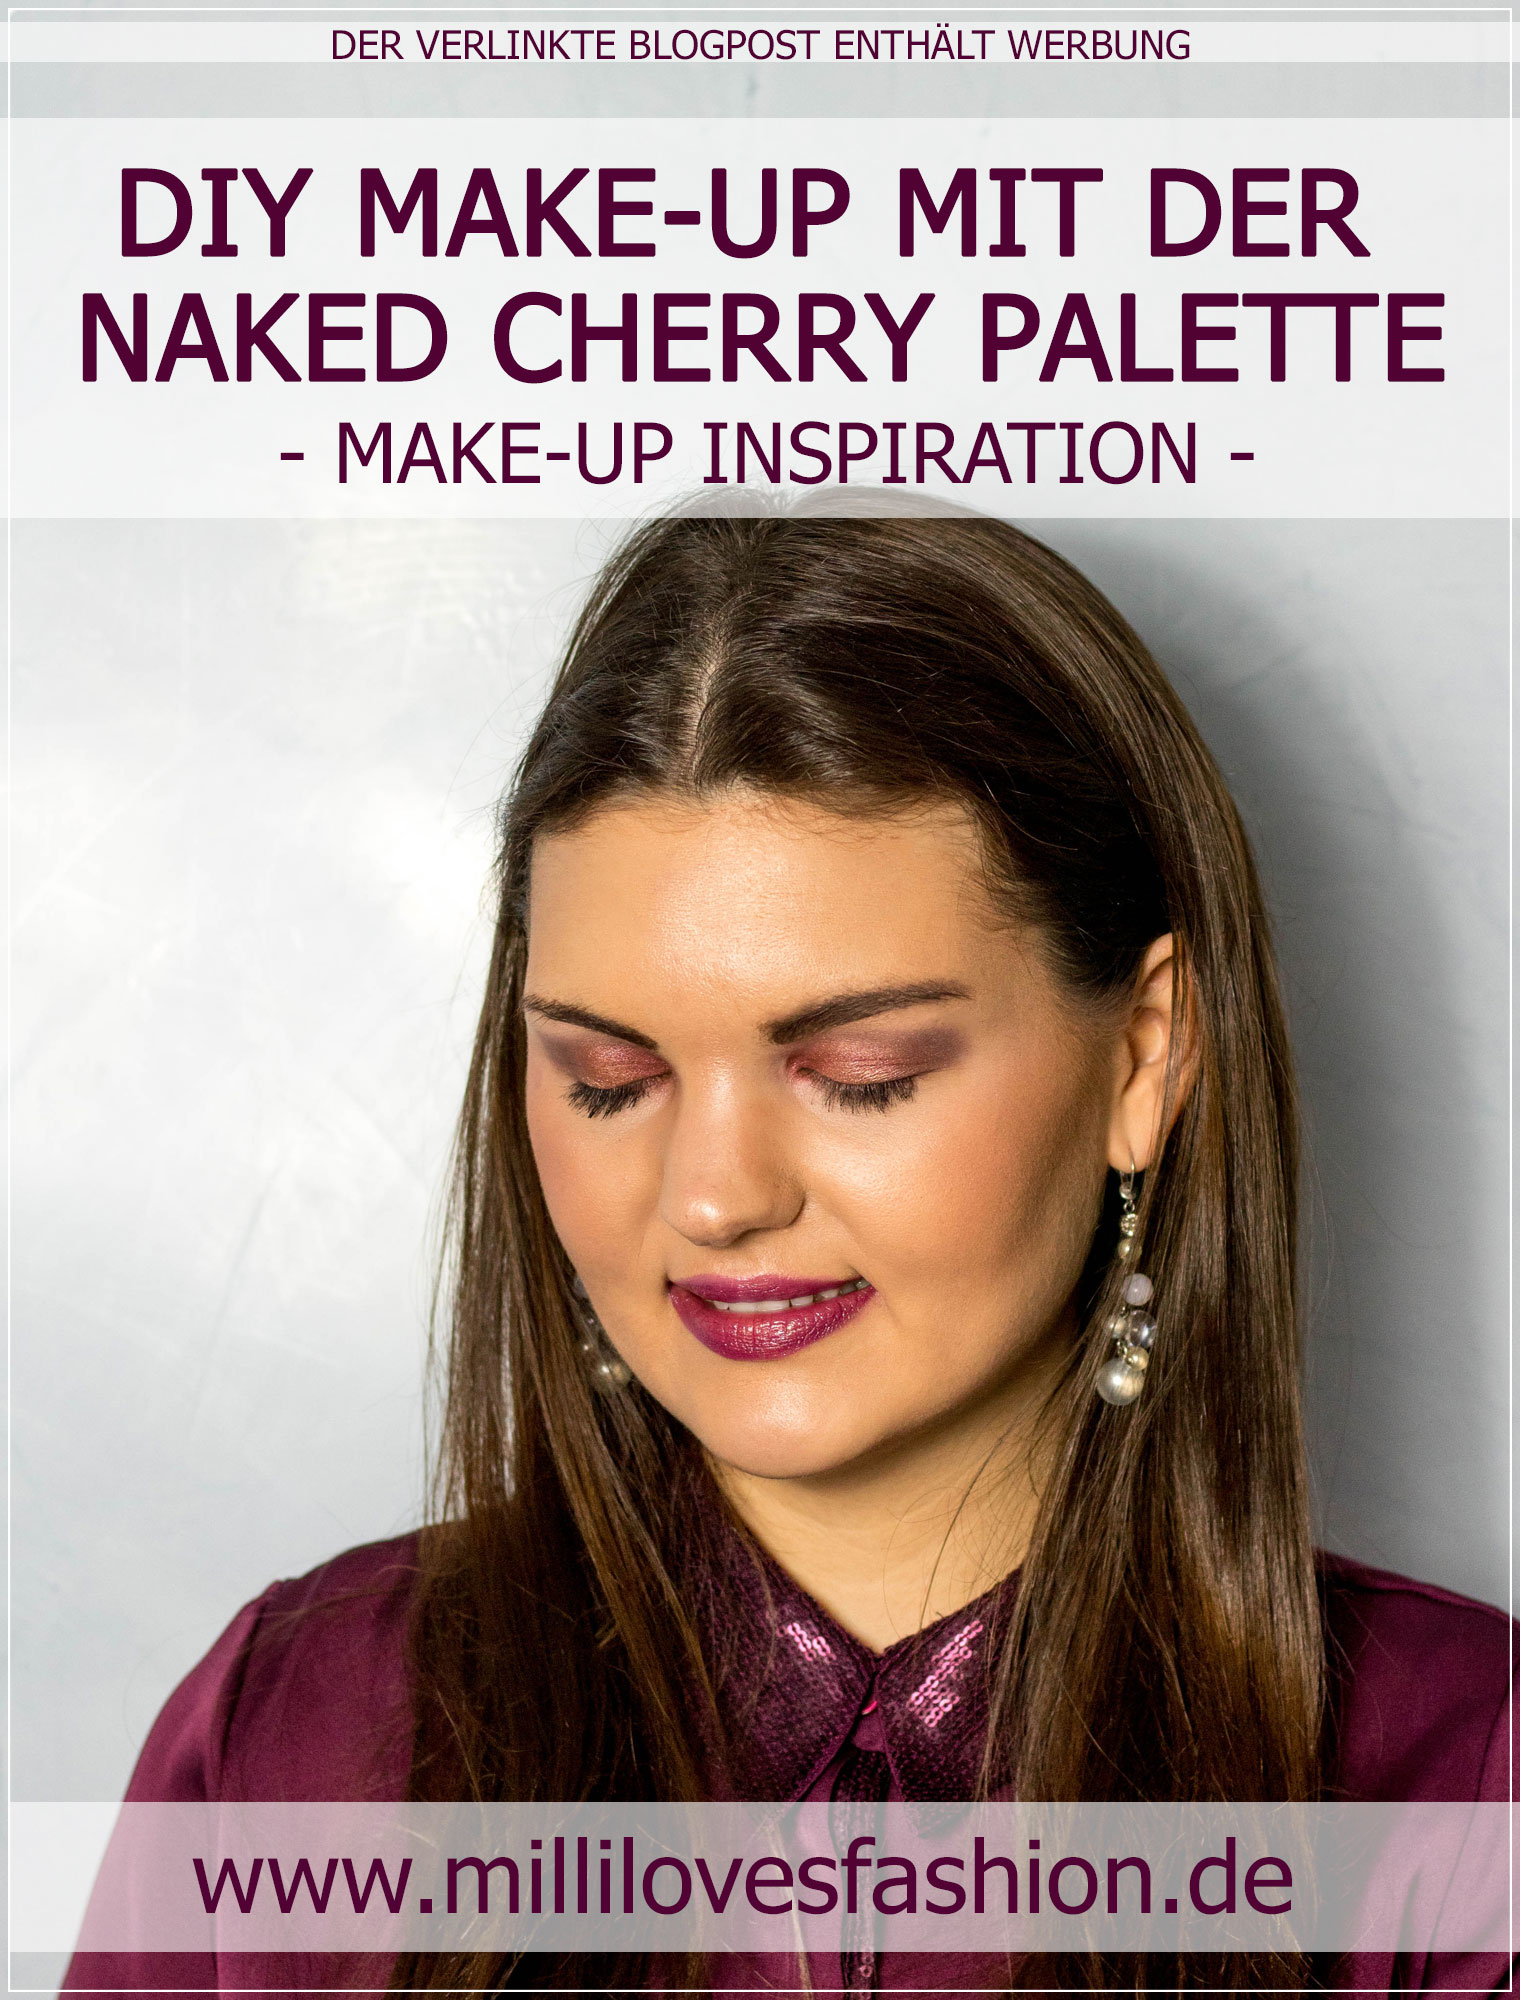 Naked Cherry Review, Naked Cherry, Abend-Make-Up, Lidschatten-Palette Beautytutorial, Make-up Tutorial, Beauty Blog, Beautybloggerin, Ruhrgebiet